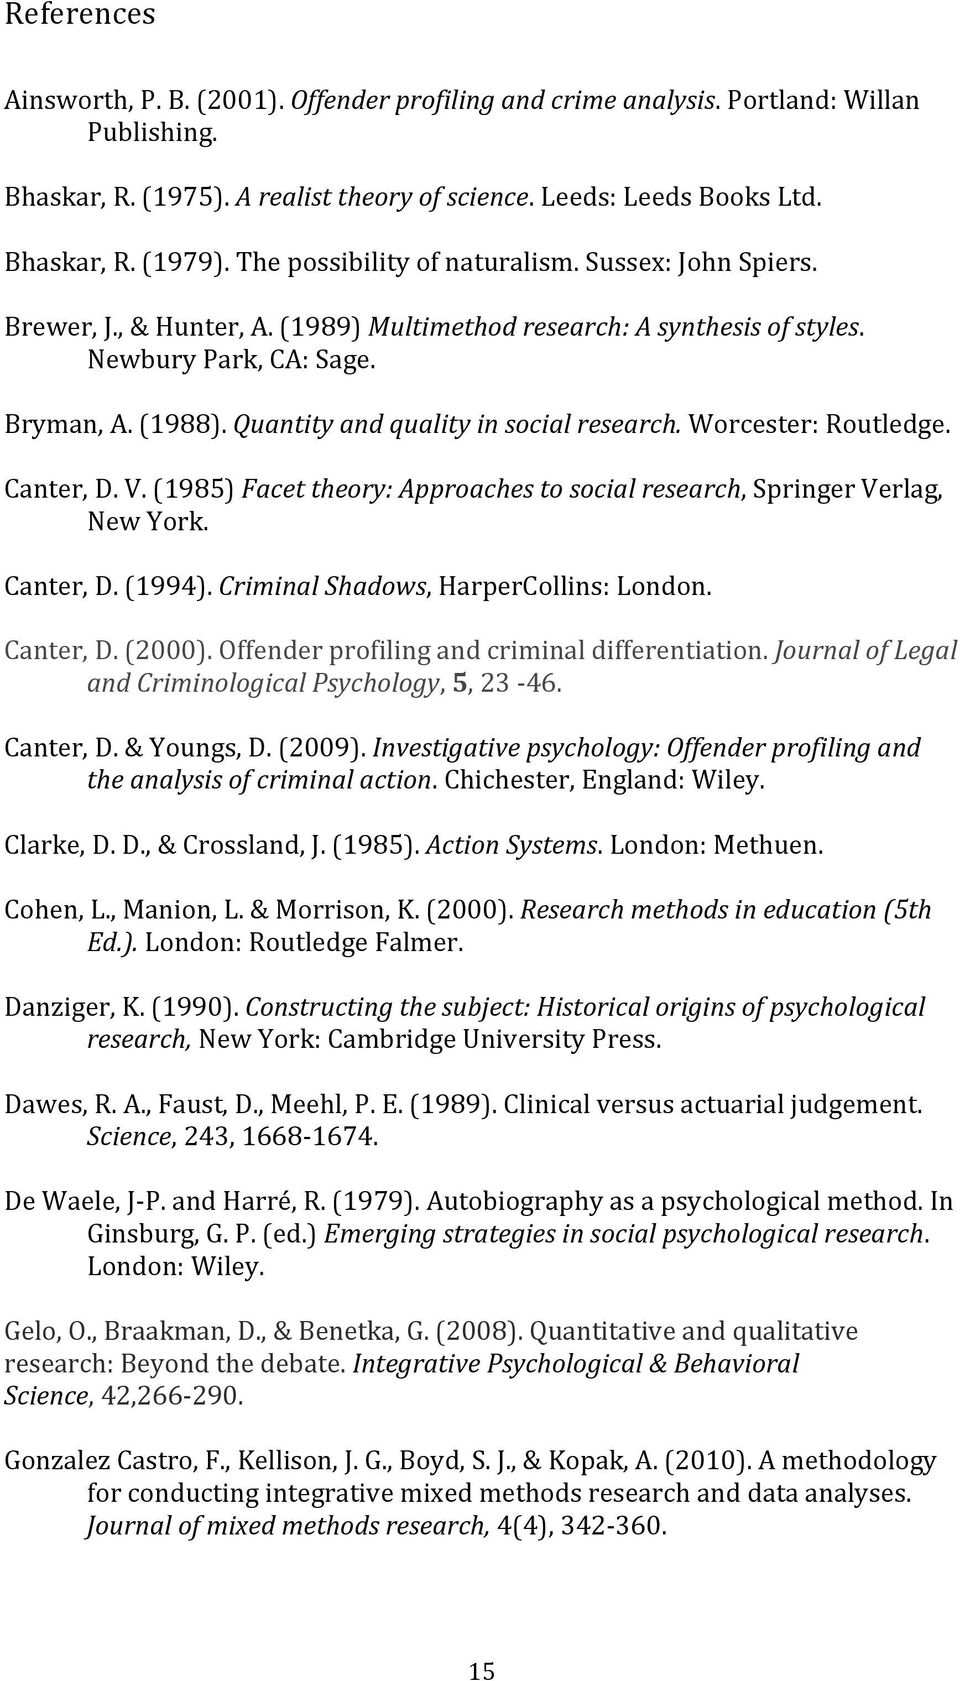 (1985)Facettheory:Approachestosocialresearch,SpringerVerlag, NewYork. Canter,D.(1994).CriminalShadows,HarperCollins:London. Canter,D.(2000).Offenderprofilingandcriminaldifferentiation.